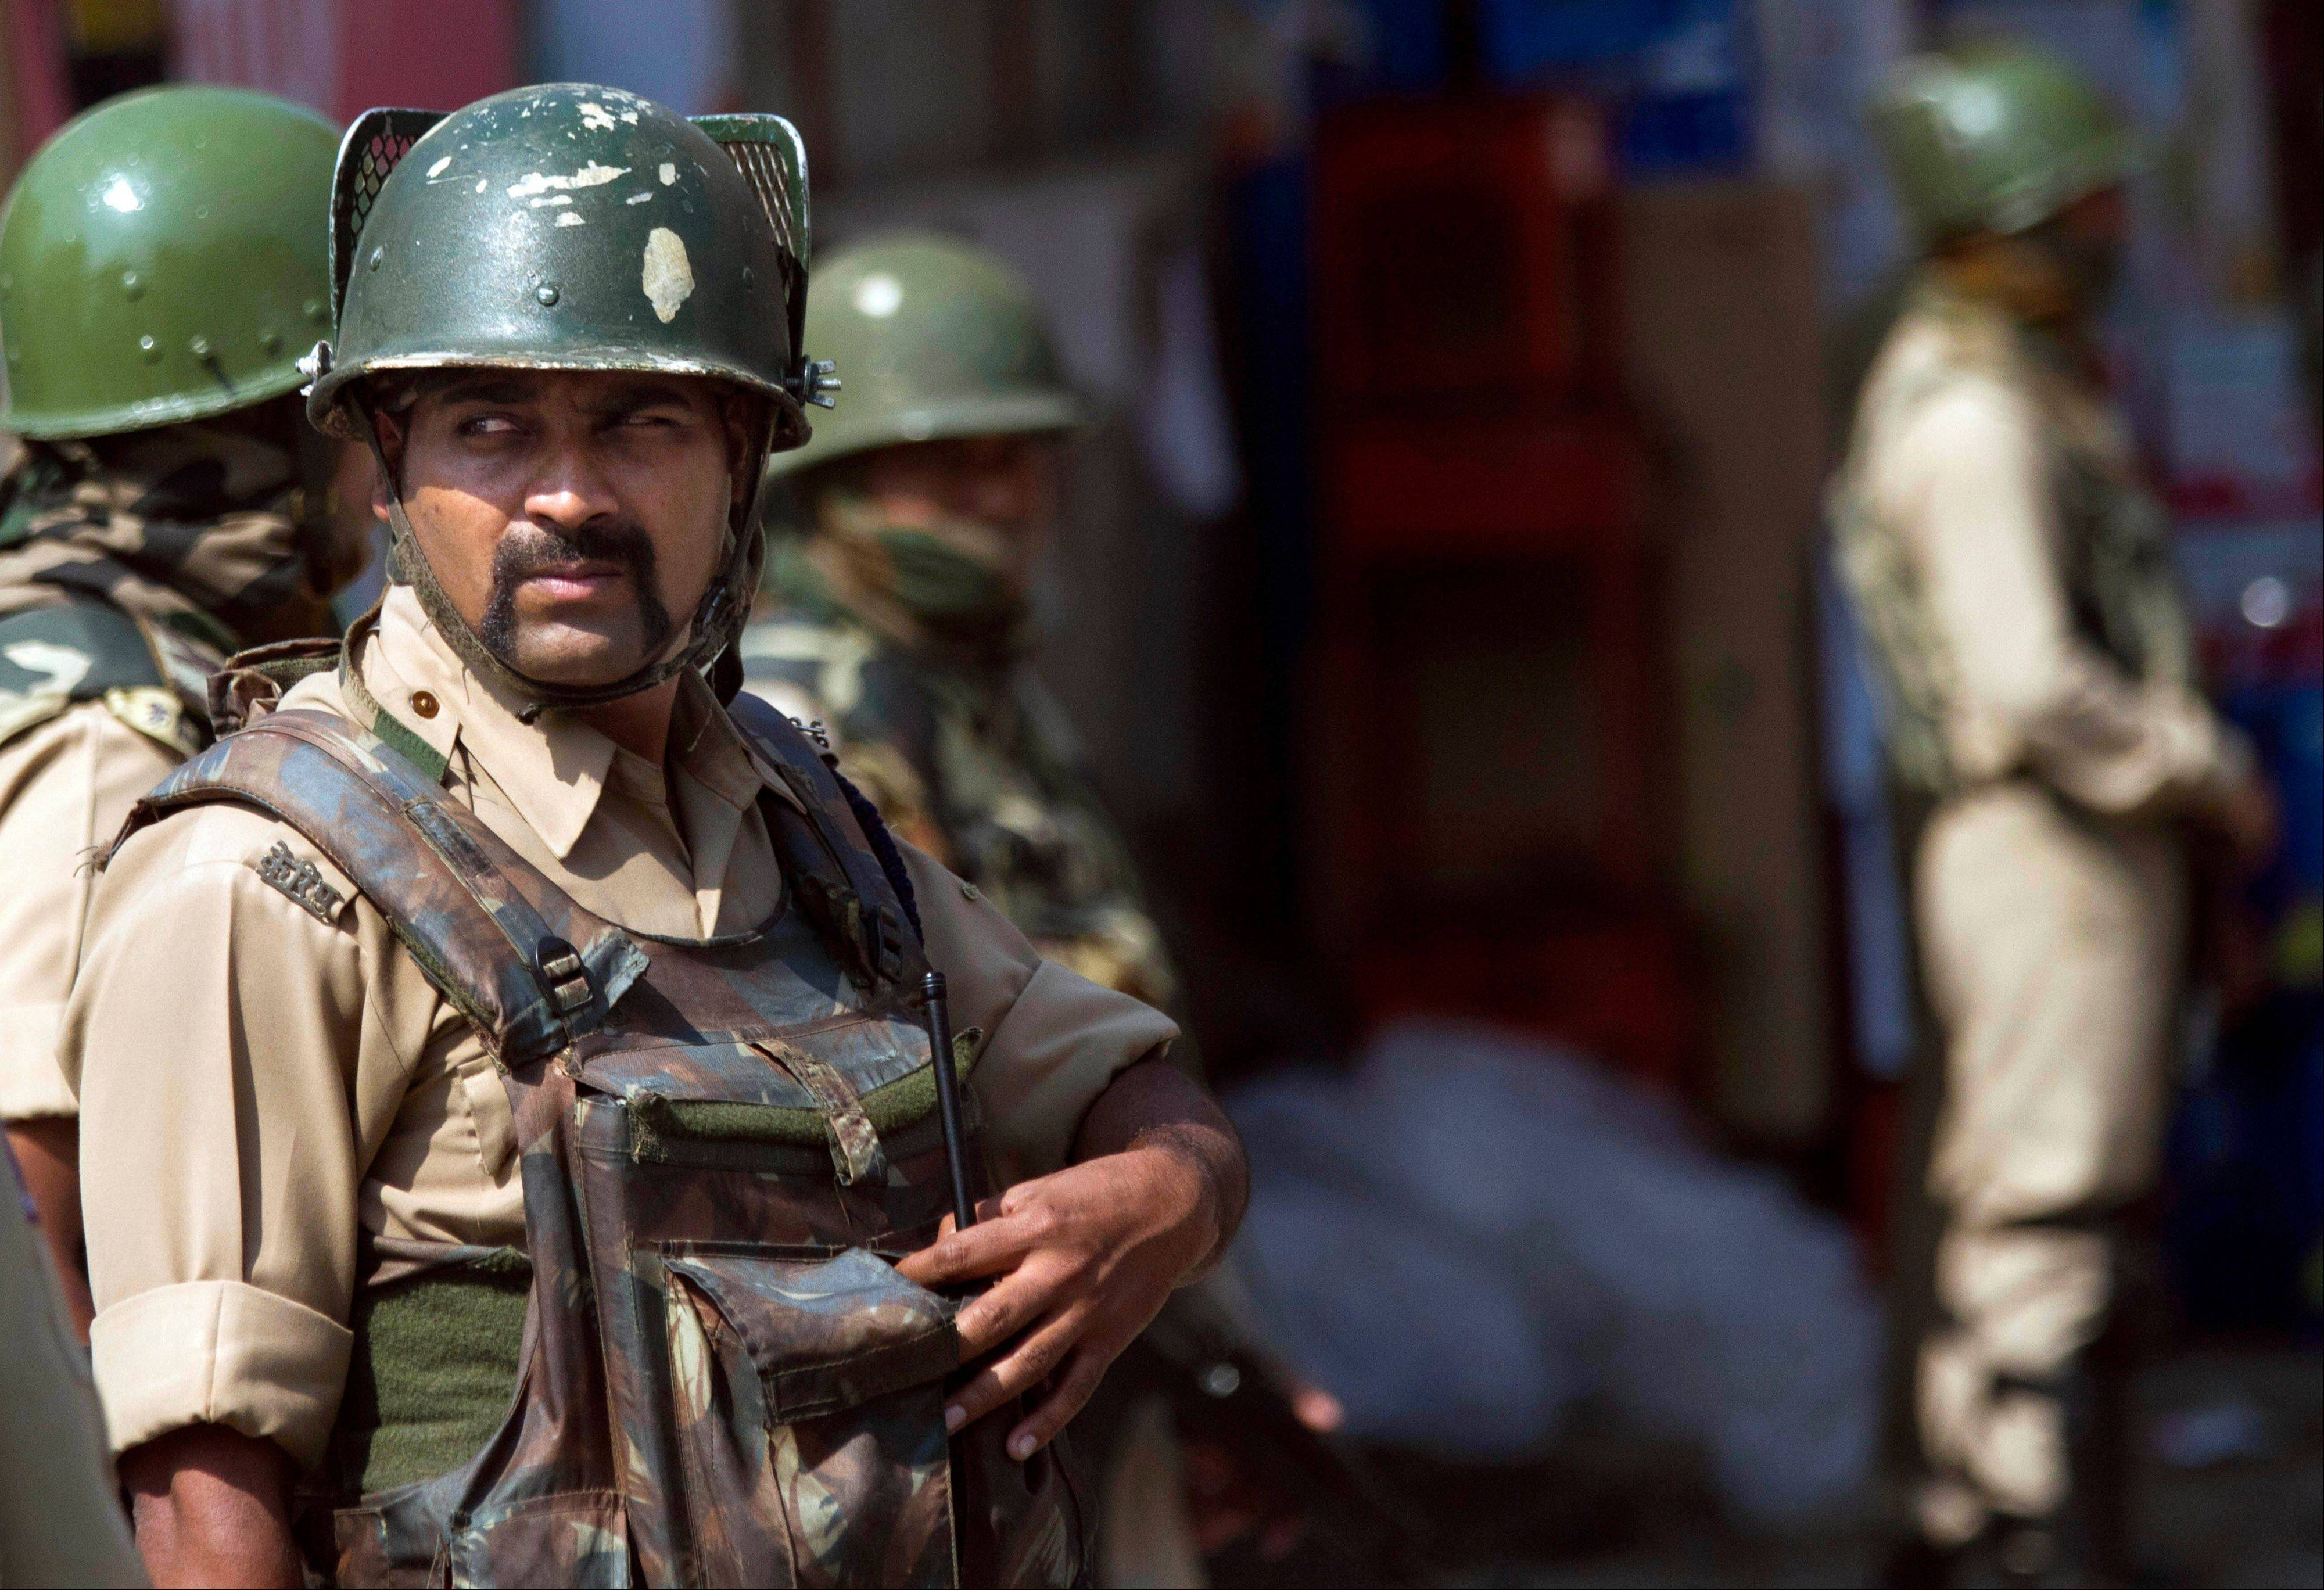 Associated Press Indian paramilitary soldiers stand guard in Srinagar, India, Saturday, Oct. 5. The Indian army said Saturday that it killed seven suspected rebels in two separate gunbattles near the heavily militarized line dividing the disputed Kashmir region between India and Pakistan.